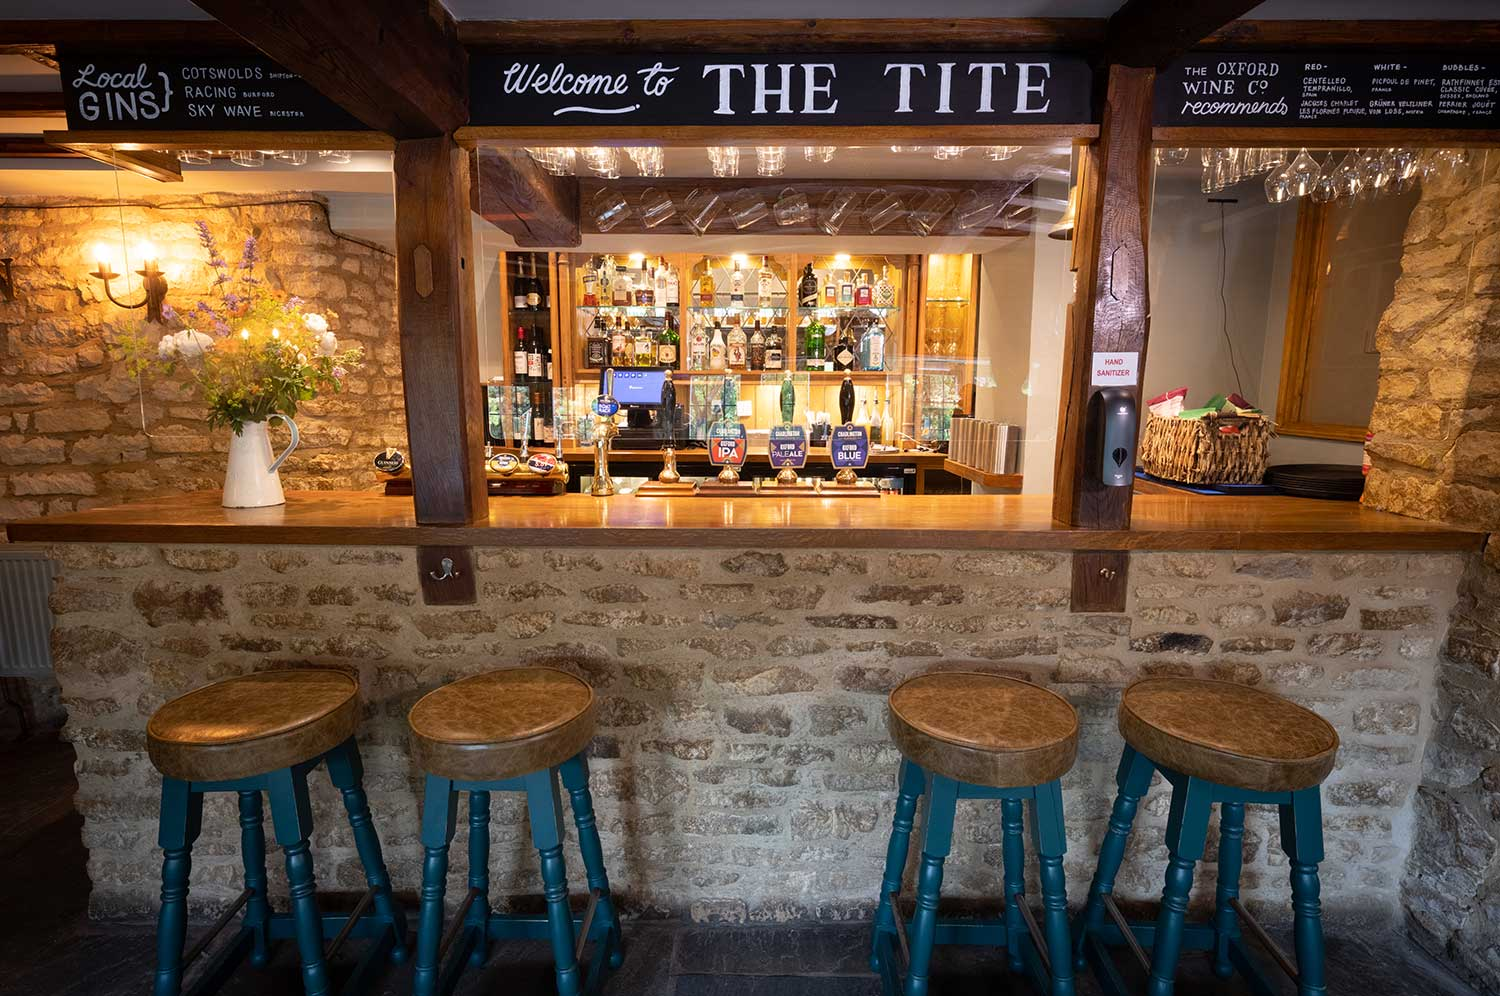 Welcome to The Tite Inn